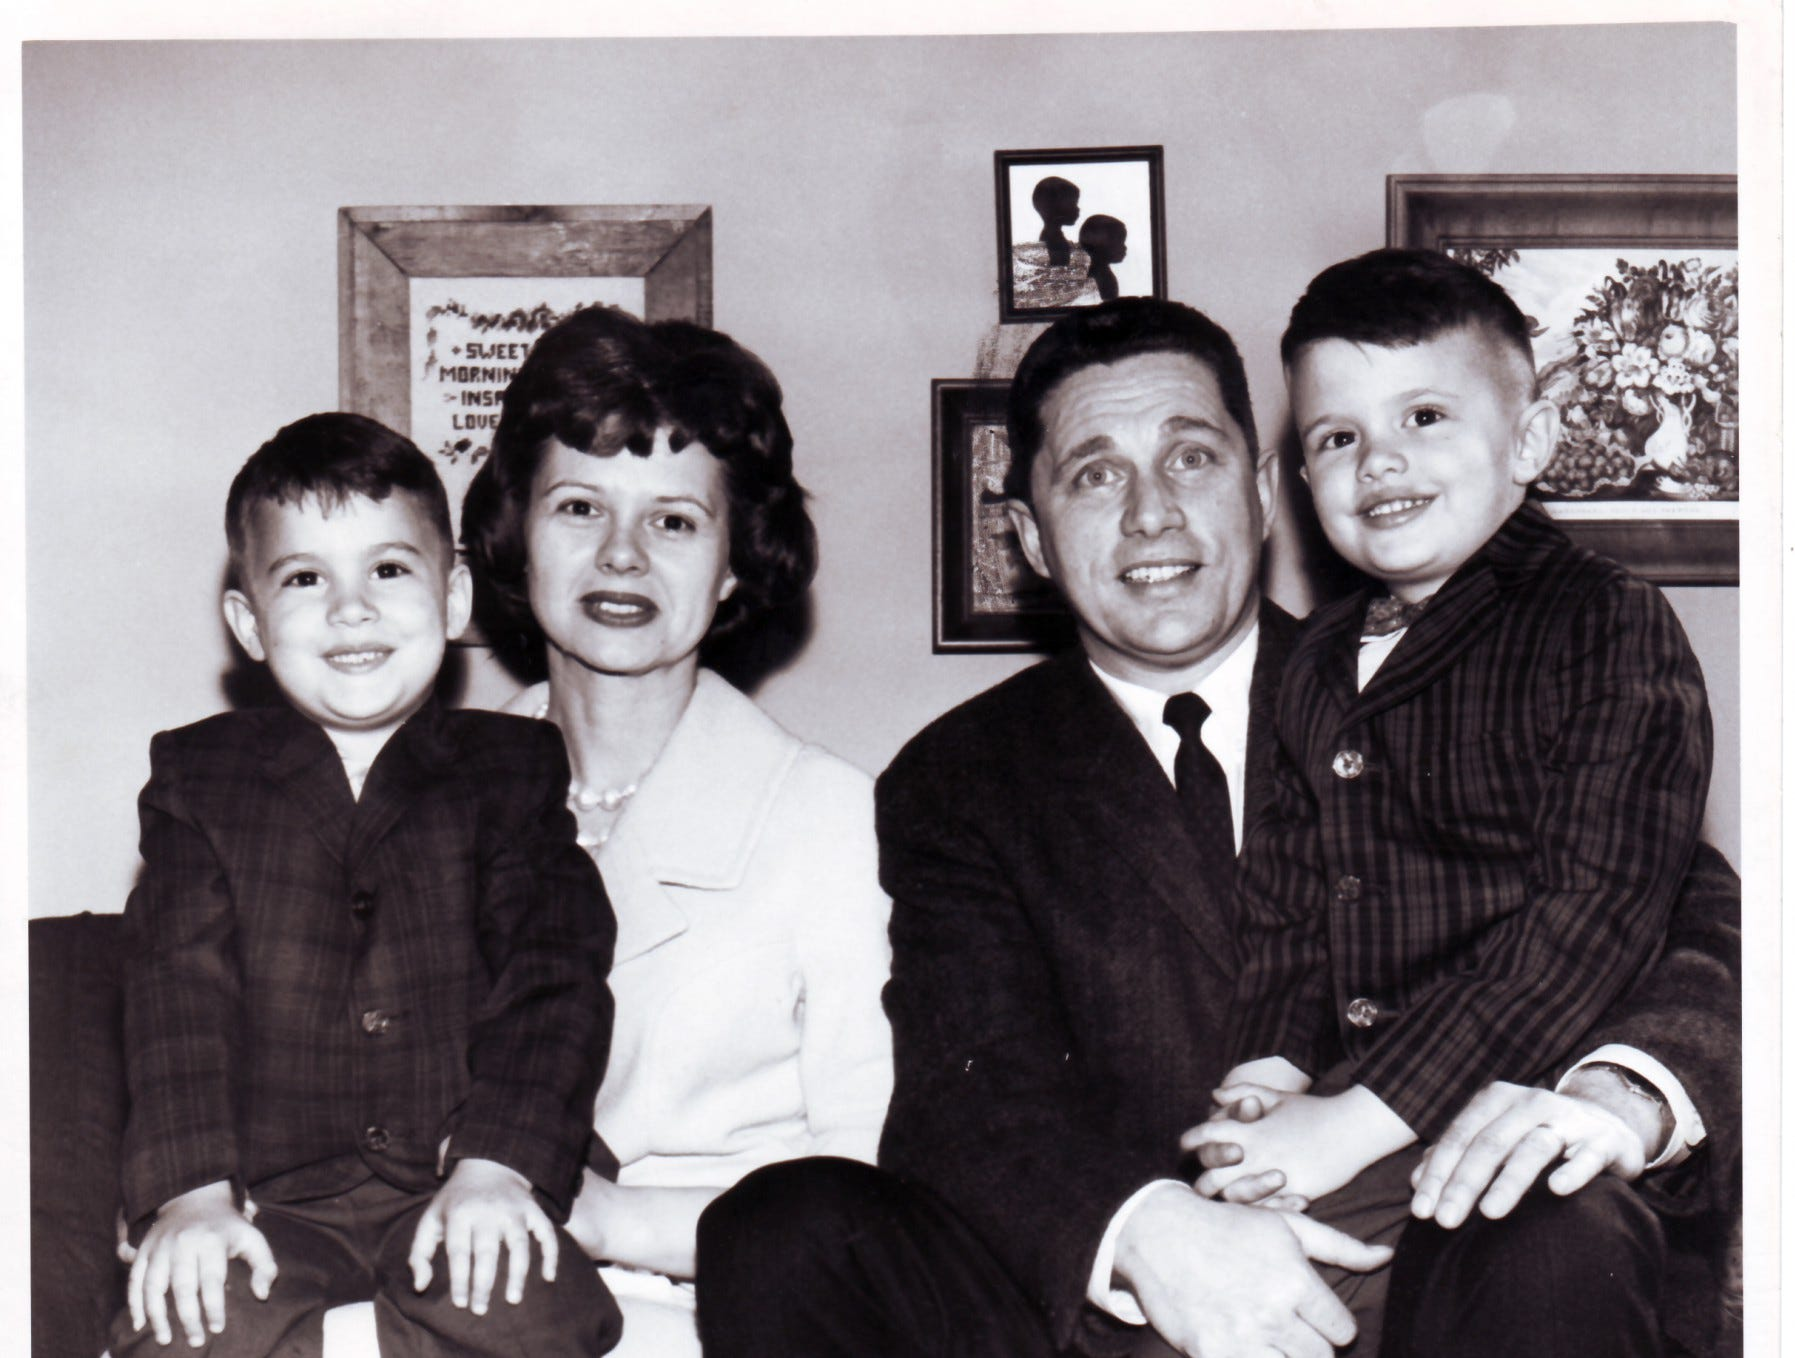 Ray and Dana Mears with their children, Steve, 5, left, and Mike, 4, on April 19, 1962 in Springfield, Ohio. Mears, 35, had just been named head coach at the University of Tennessee after leading Wittenberg University to four Ohio Athletic conference championships. .